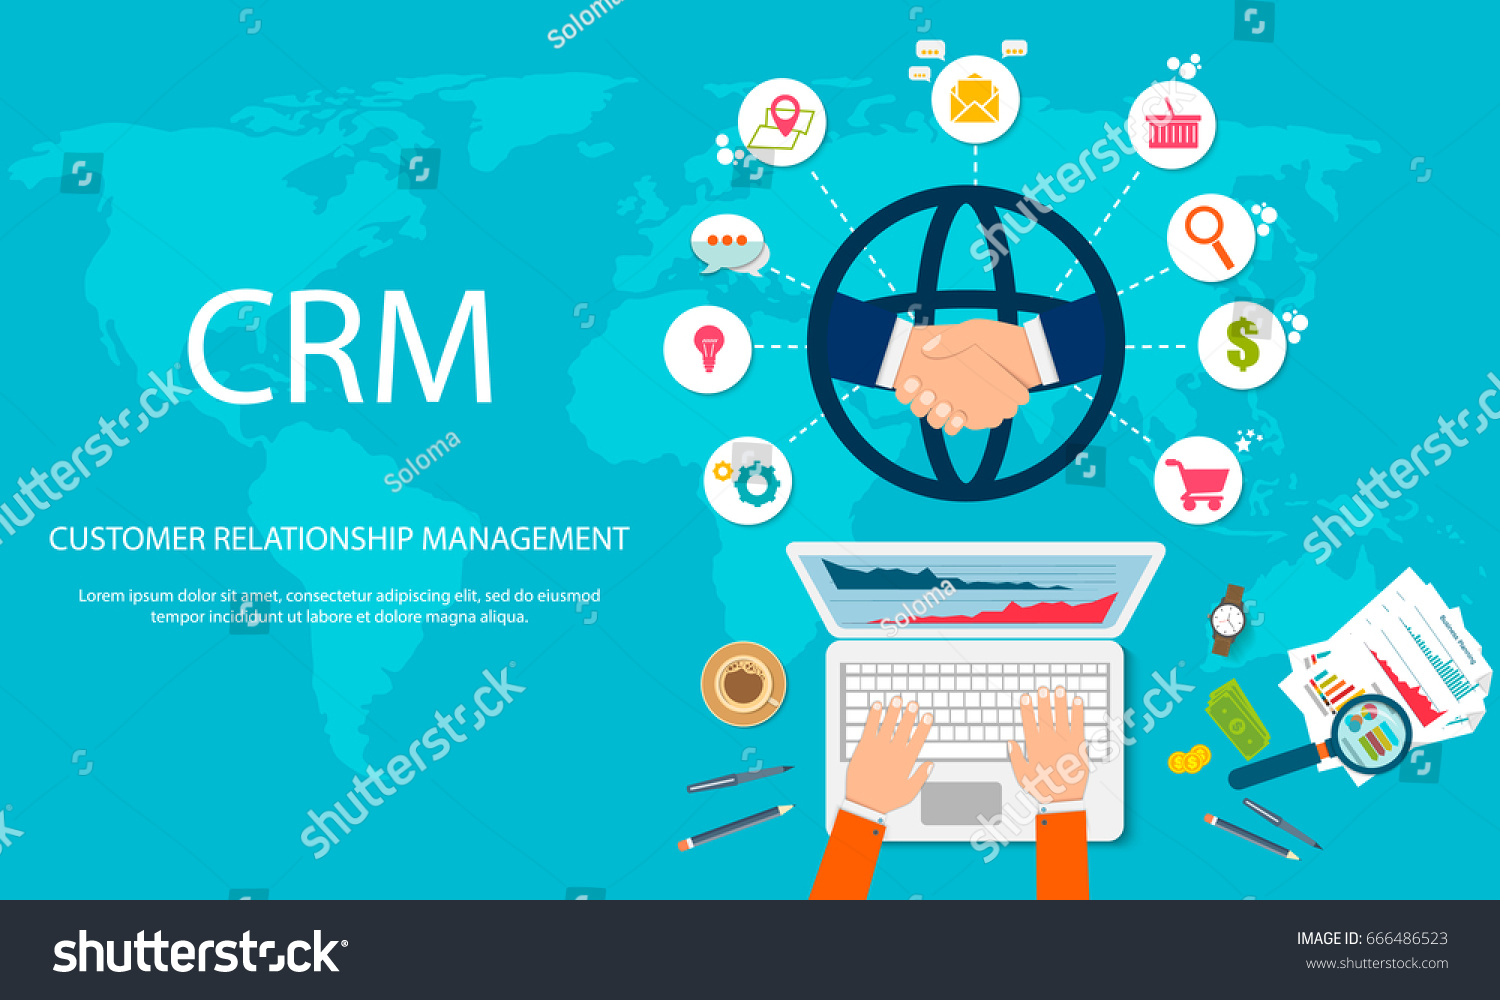 success guide to crm from information technology perspective Crm from the information technology perspective from the technology perspective customer relationship management is the establishment, development.